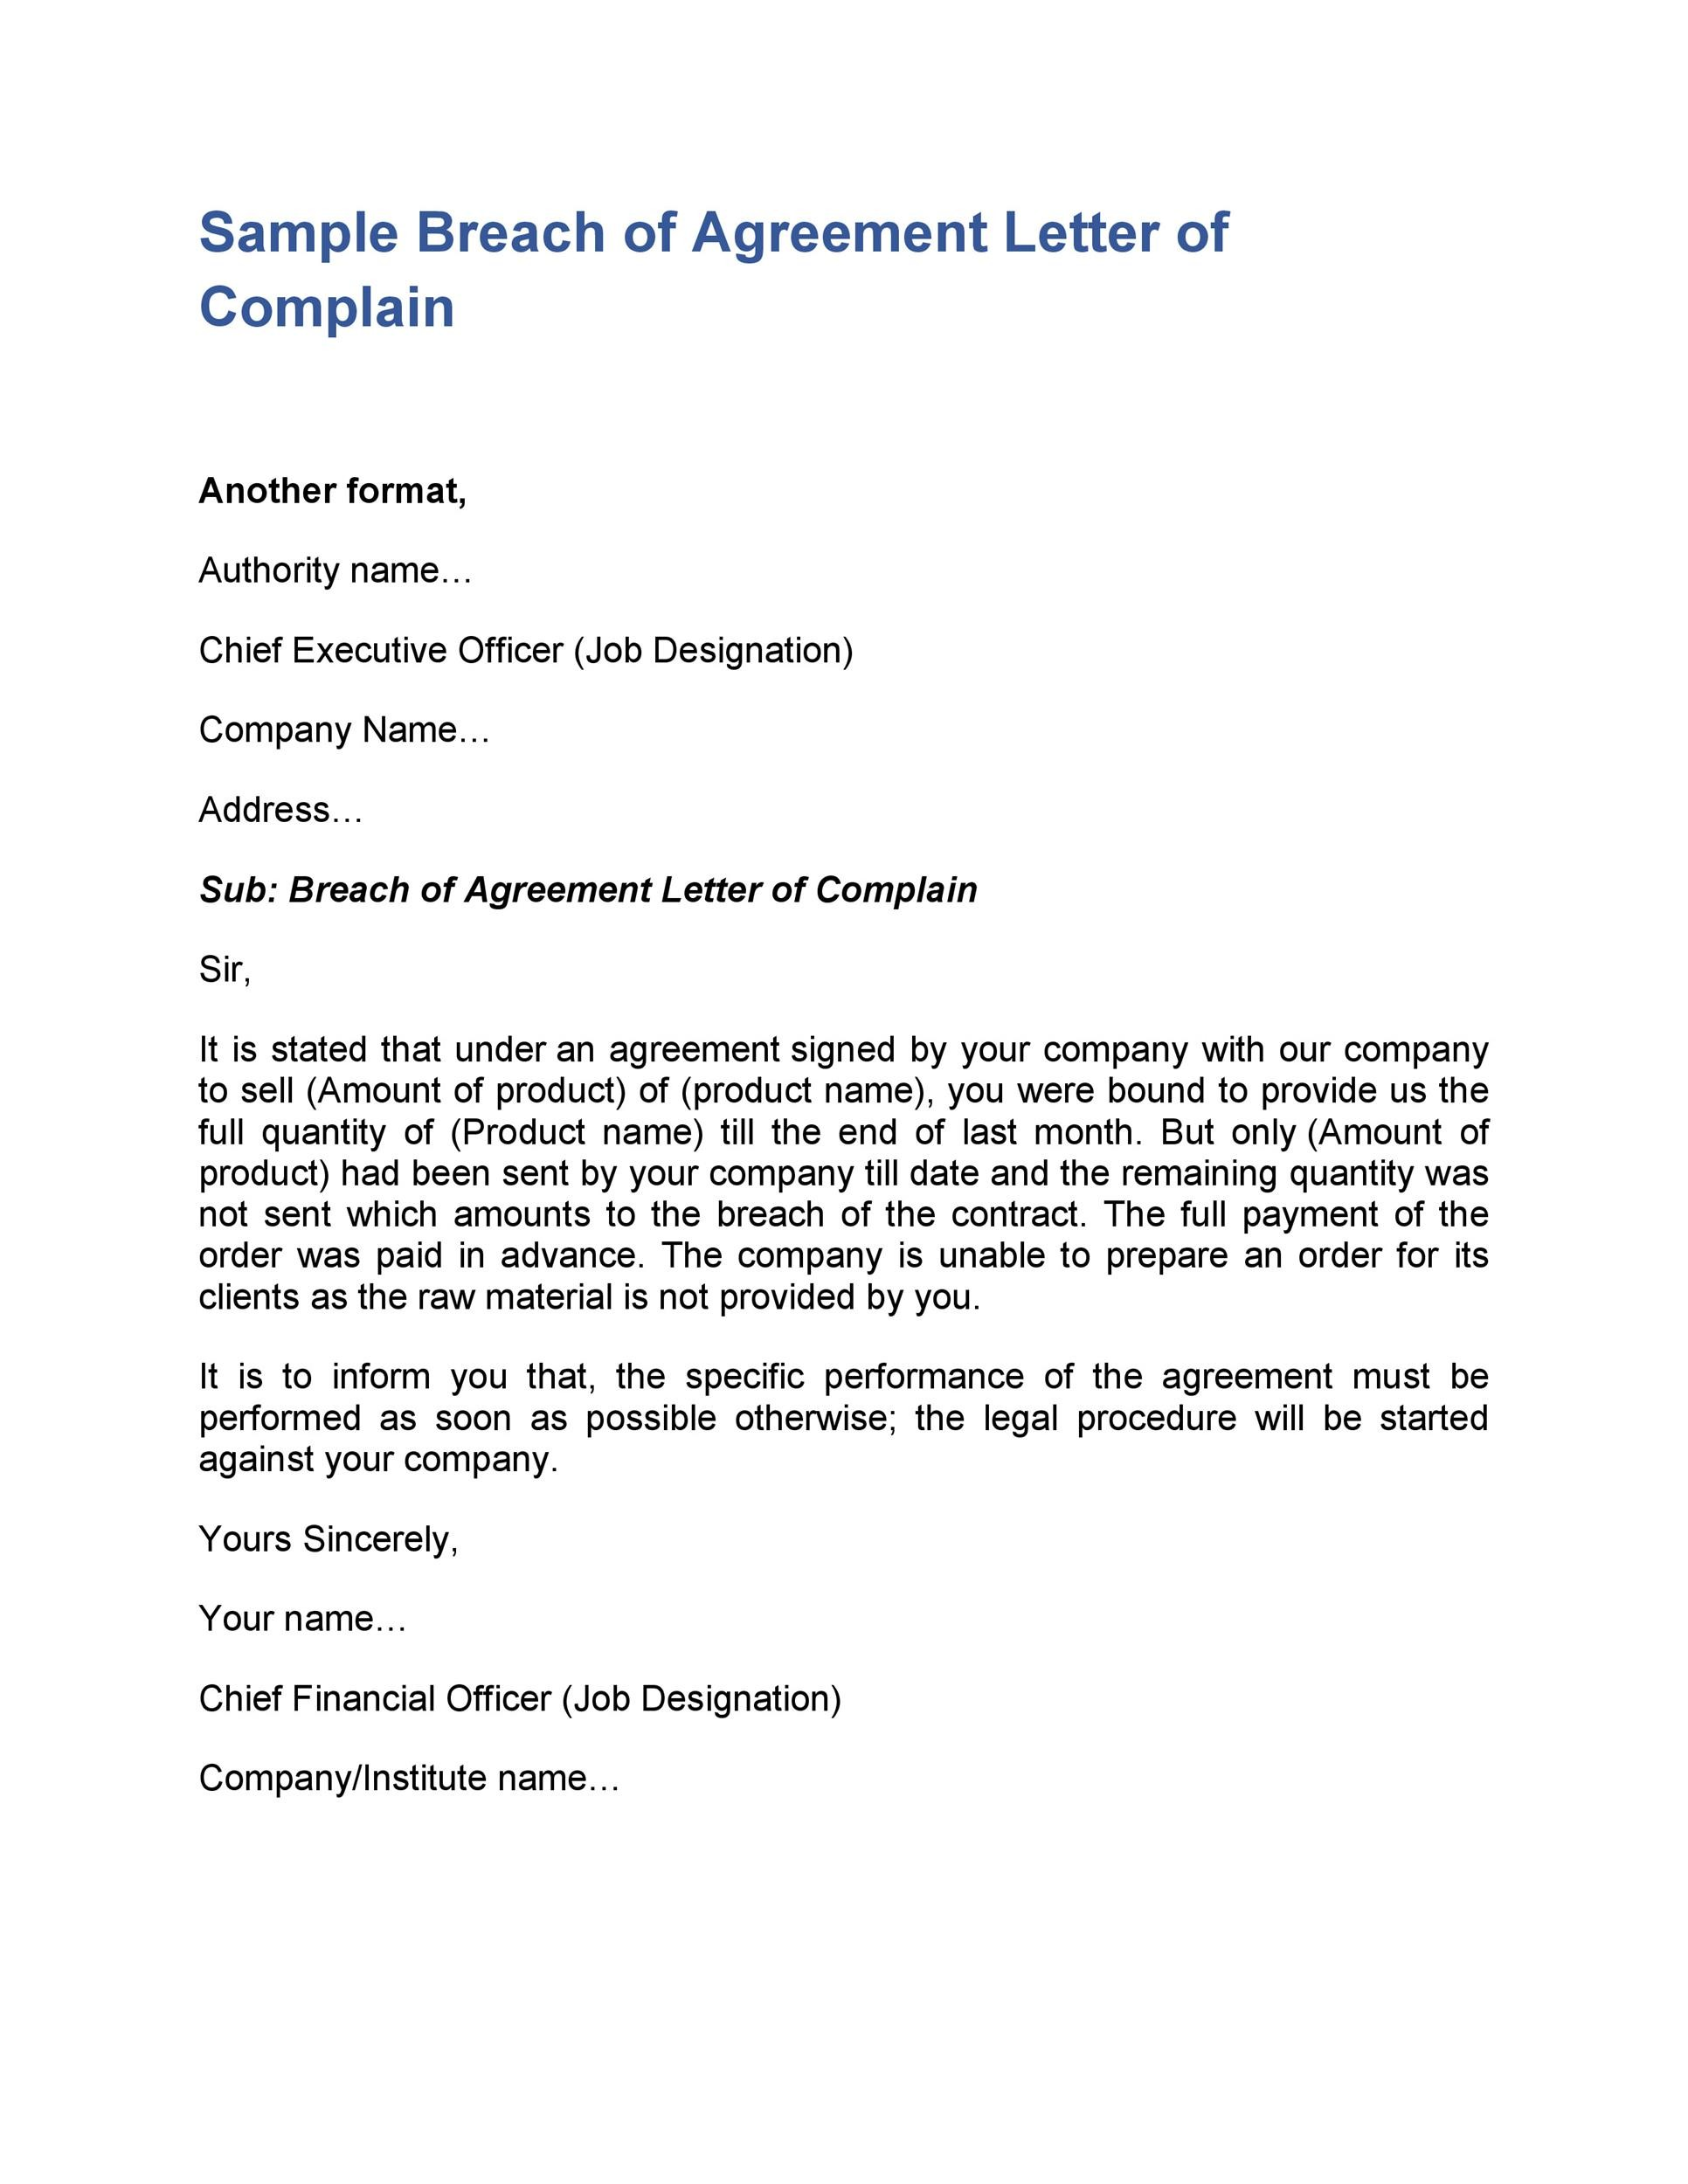 Sample Demand Letter For Breach Of Contract from templatelab.com